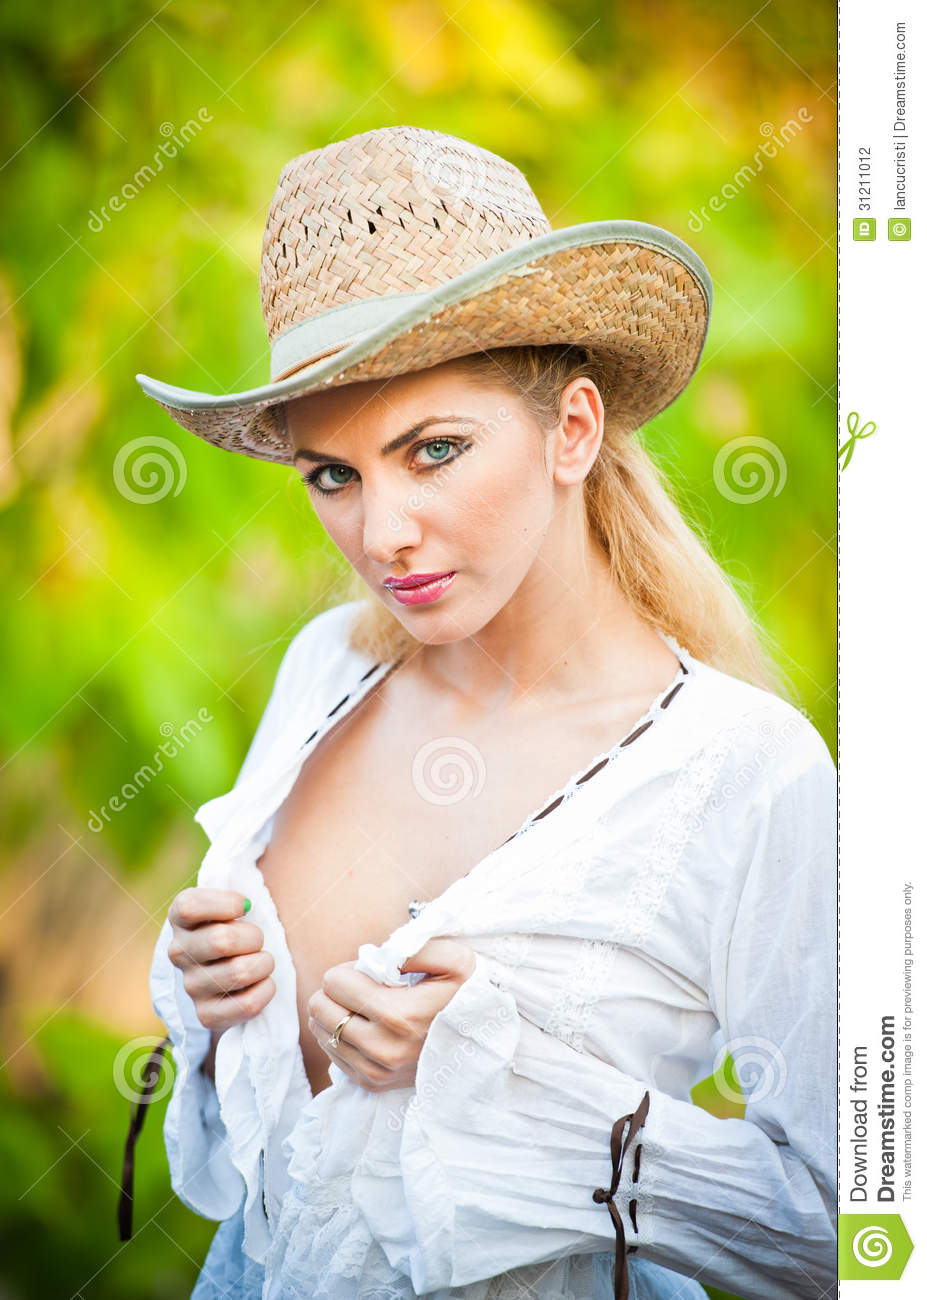 Beautiful young woman with straw hat and white kaftan in the  forest.Gorgeous blond haired blue eyes while wearing a straw cowboy hat 109b34e20c1f